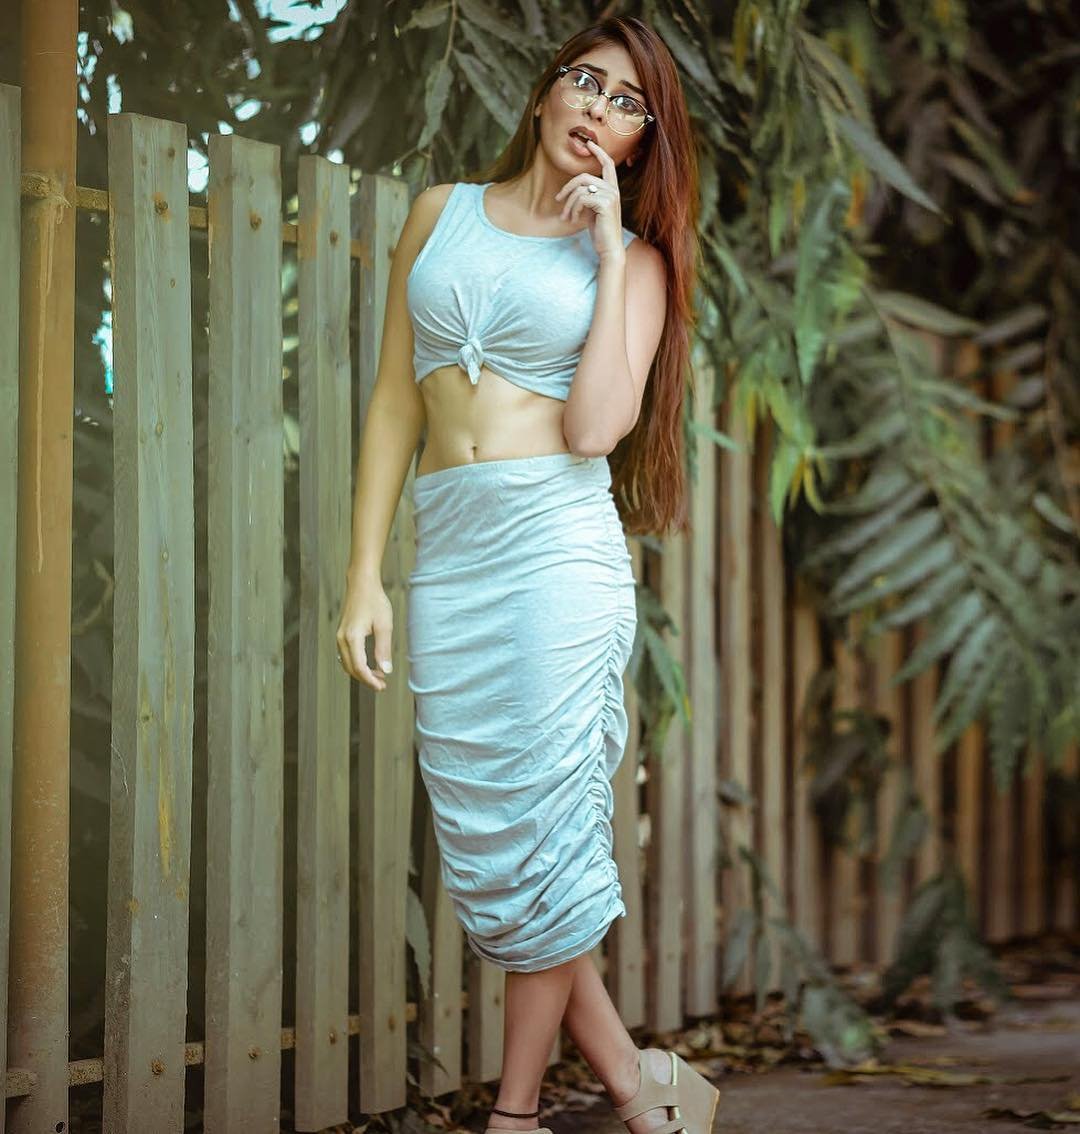 Ruma Sharma hot image